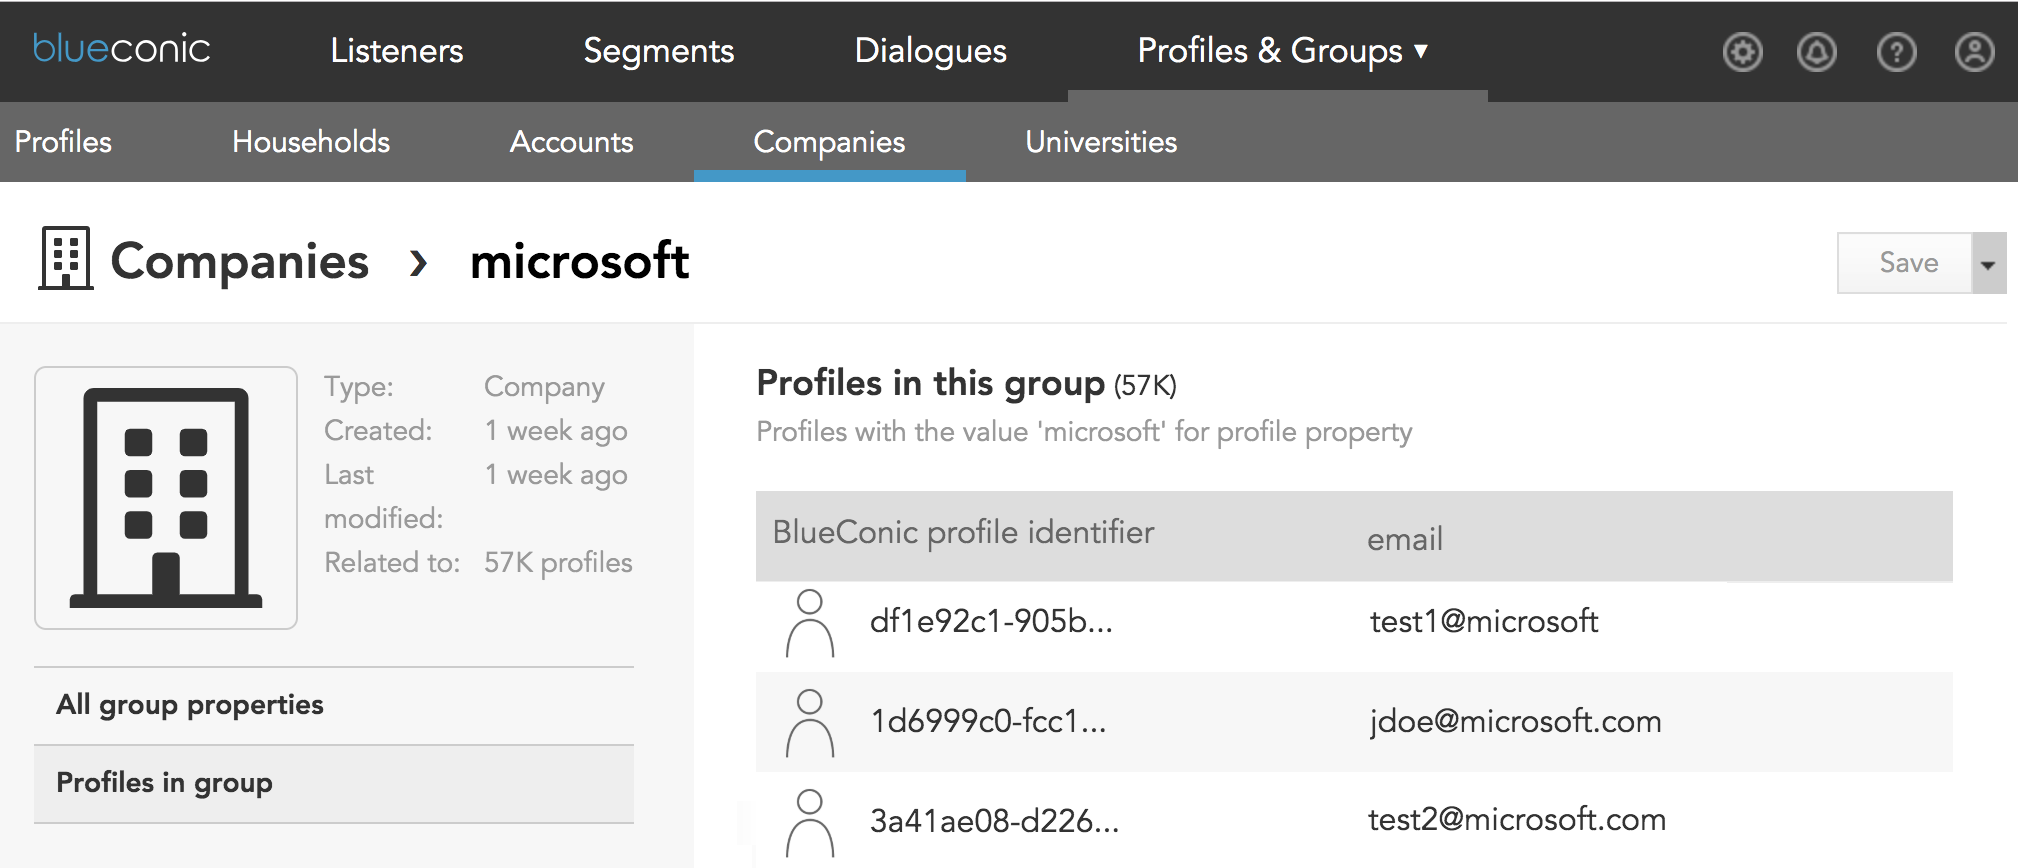 How do I find all the members of a group in BlueConic?